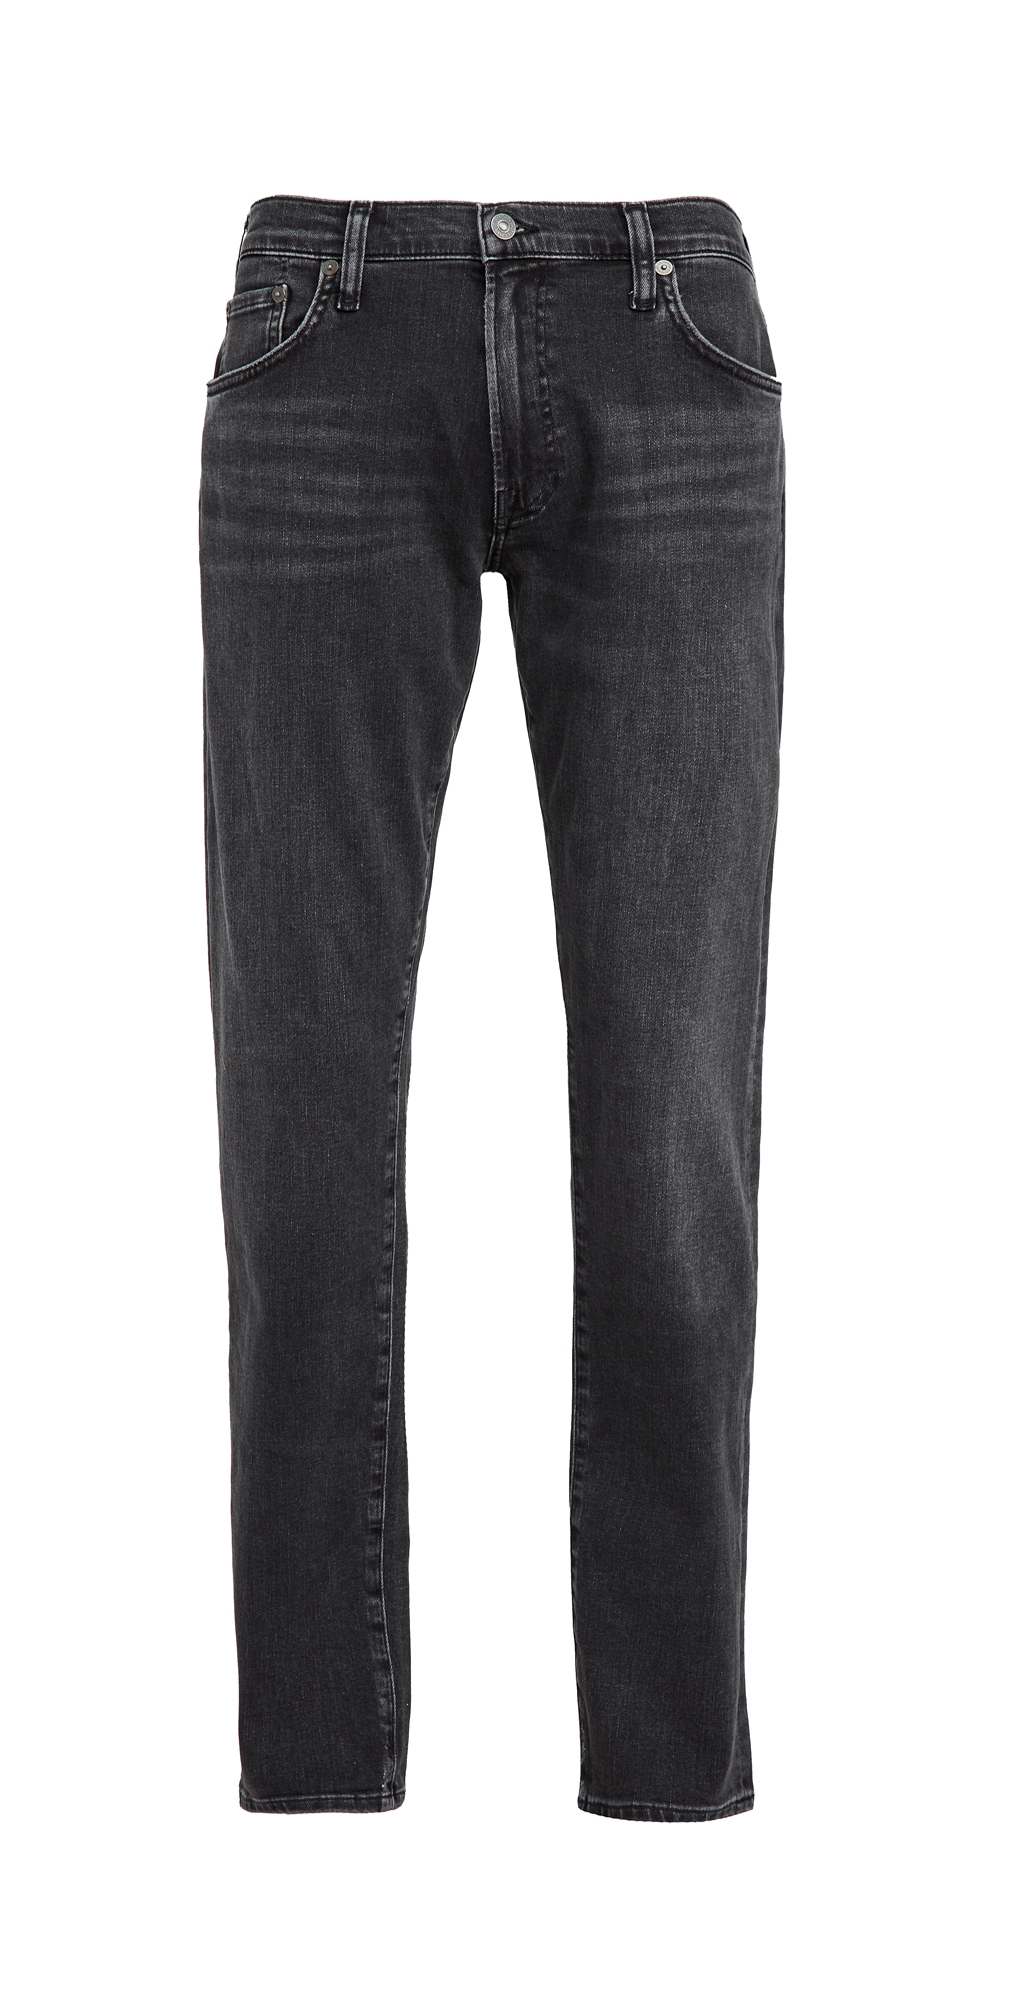 Citizens Of Humanity Jeans ADLER TAPERED CLASSIC JEANS